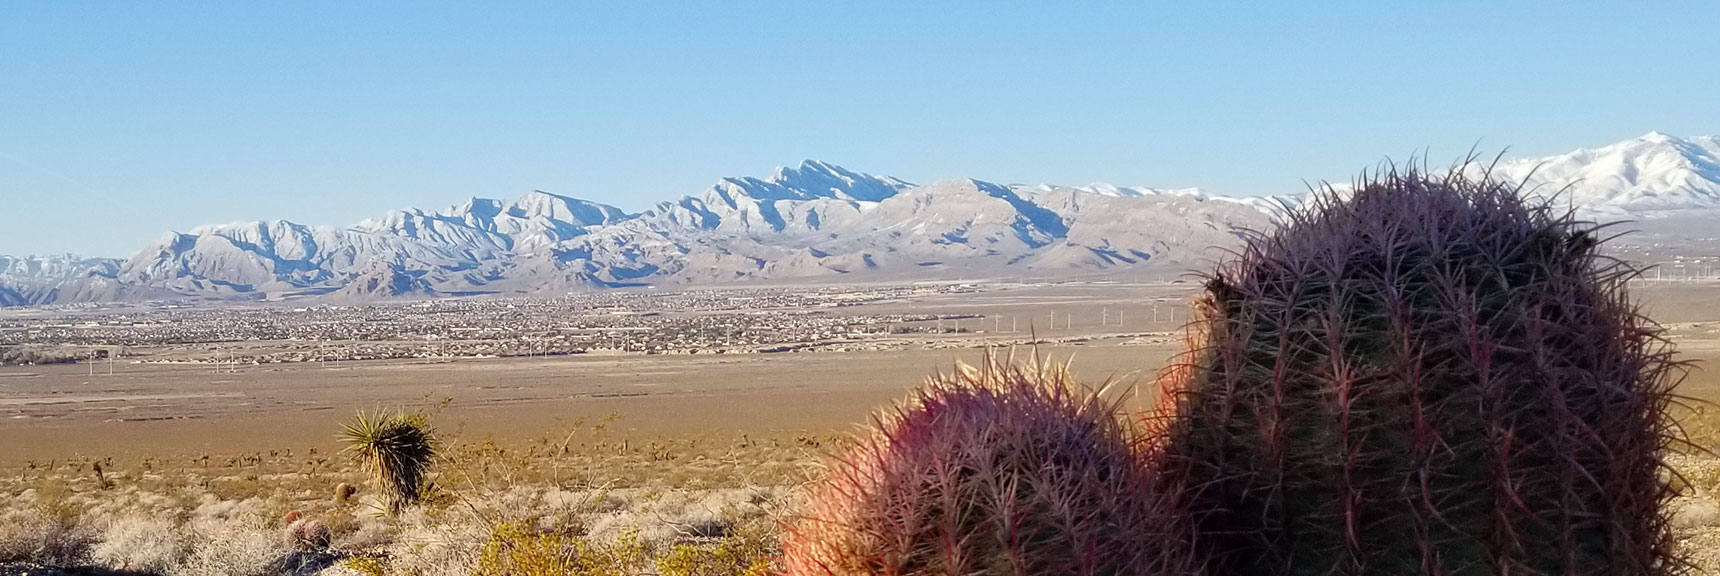 La Madre Mountain Wilderness from Southern Approach to Gass Peak, Nevada